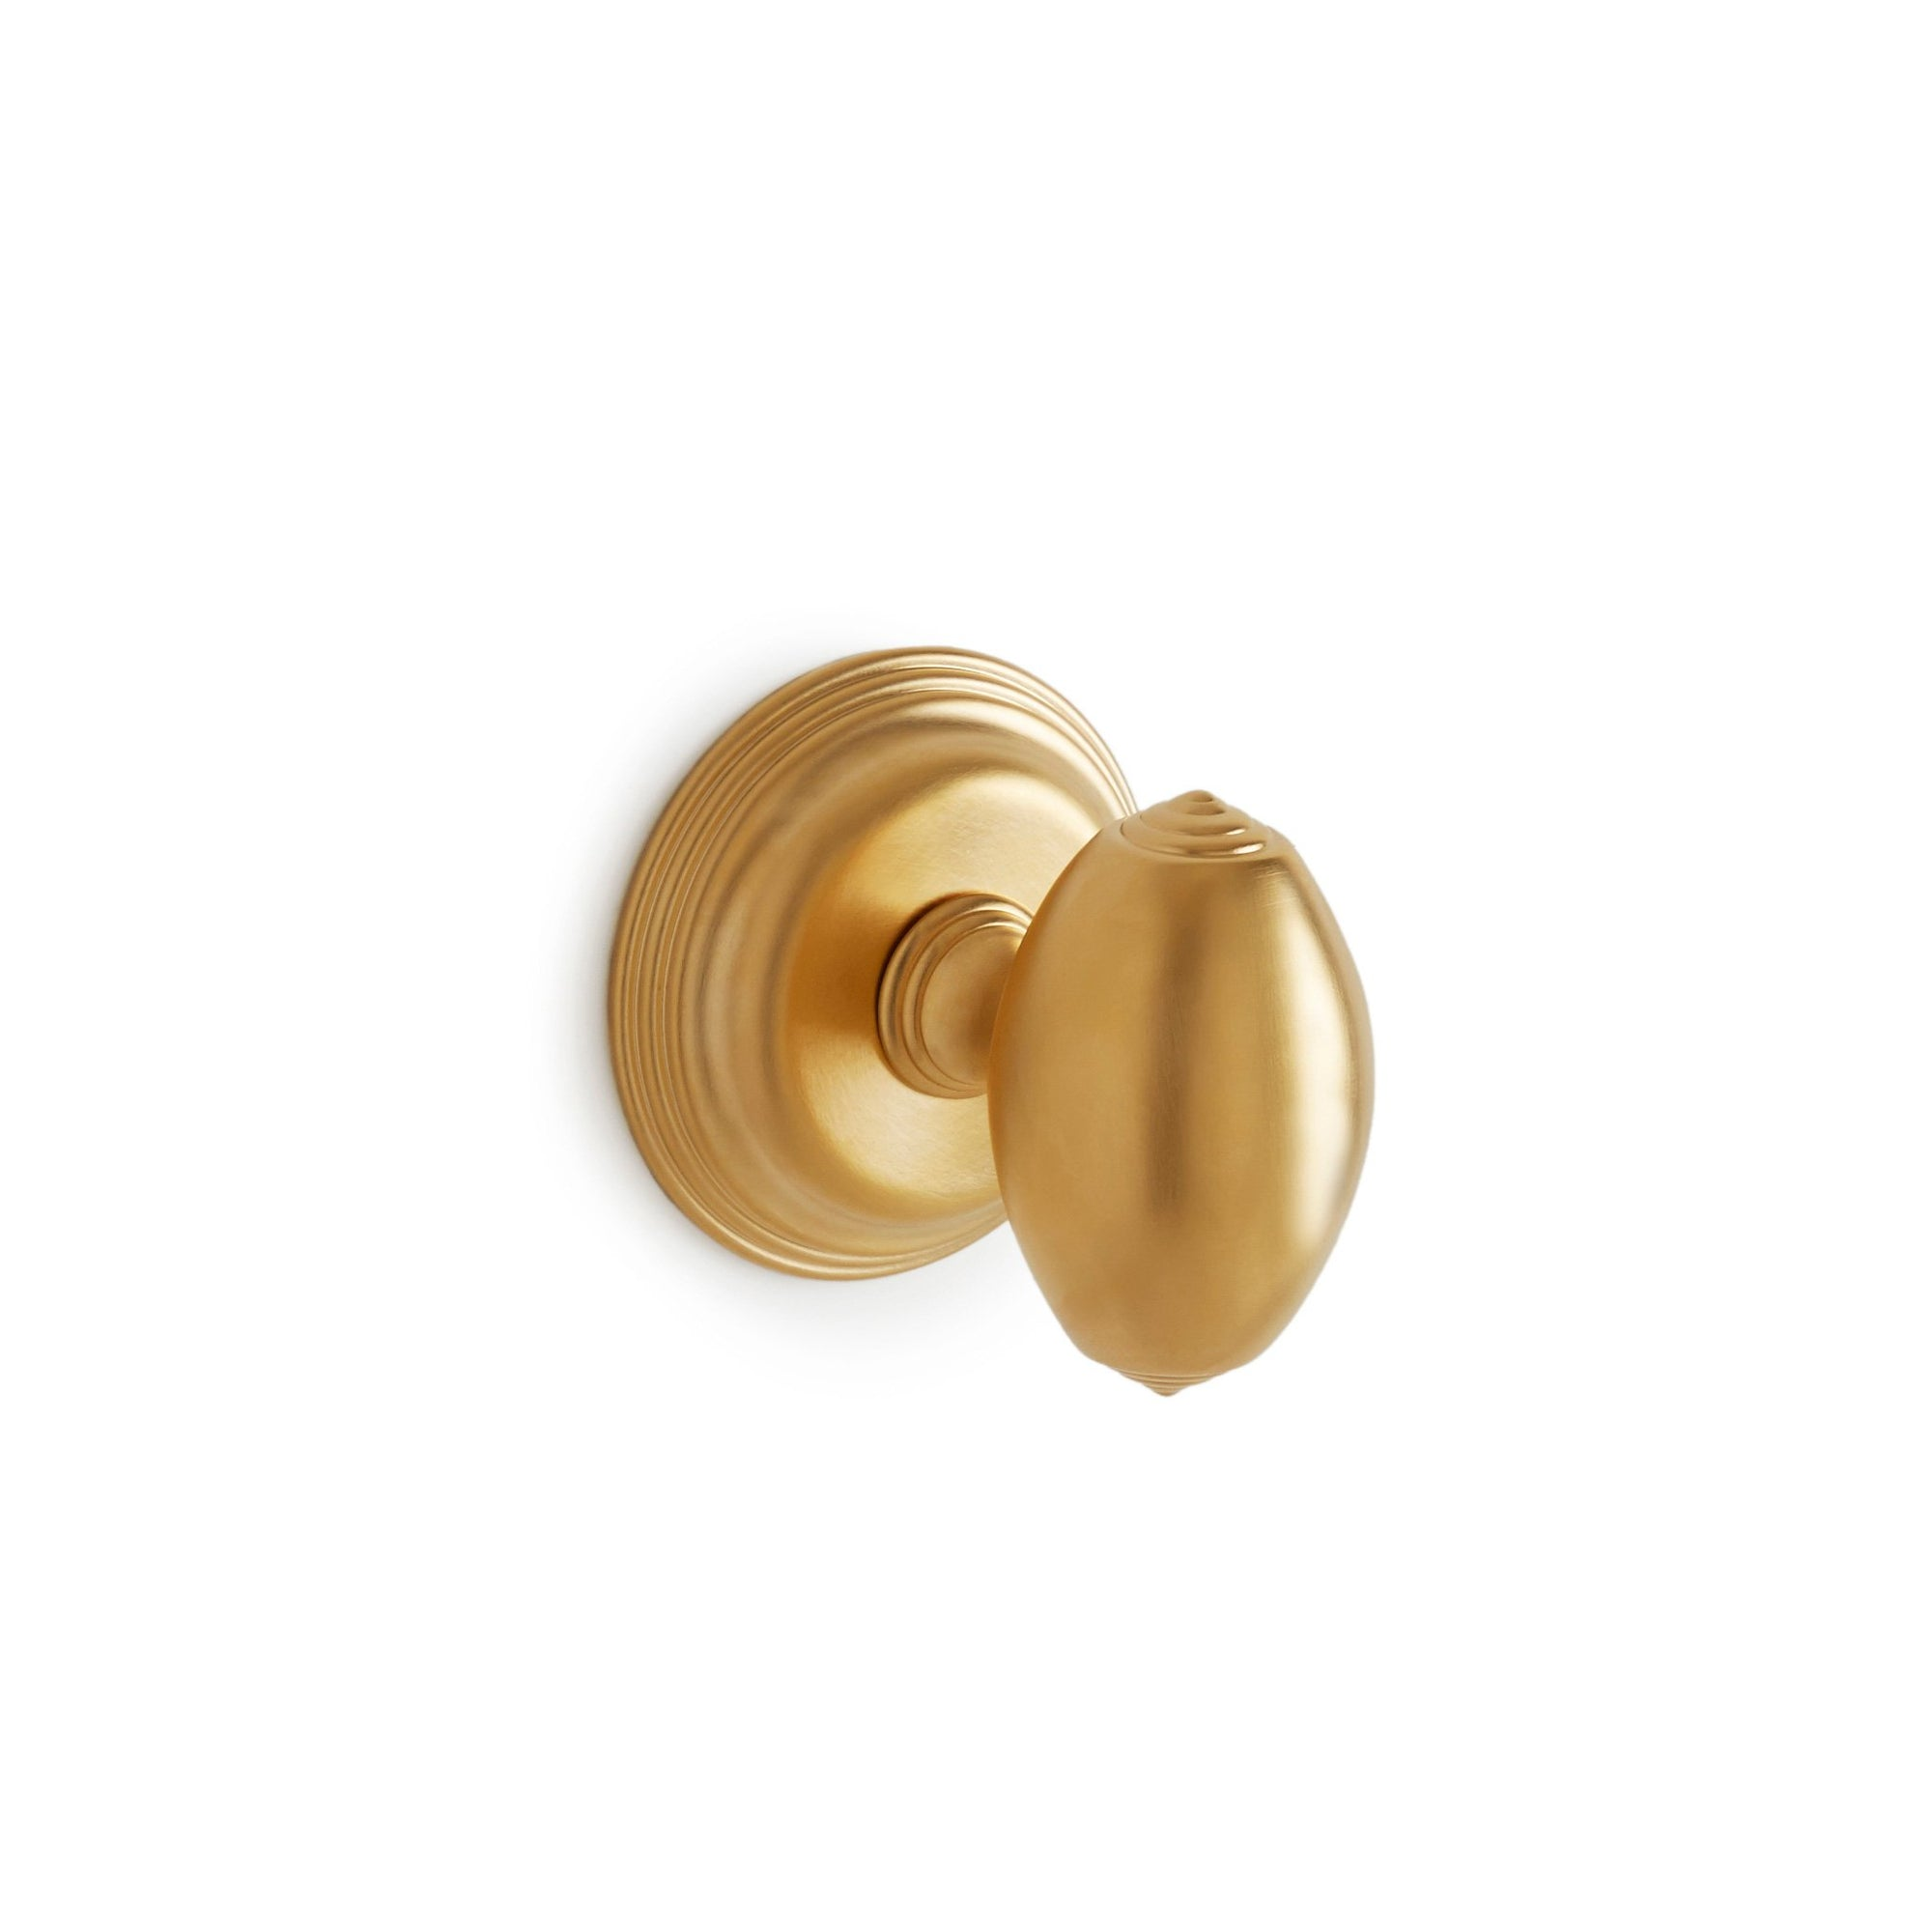 0016DOR-GP Sherle Wagner International Grey Oval Door Knob in Gold Plate metal finish